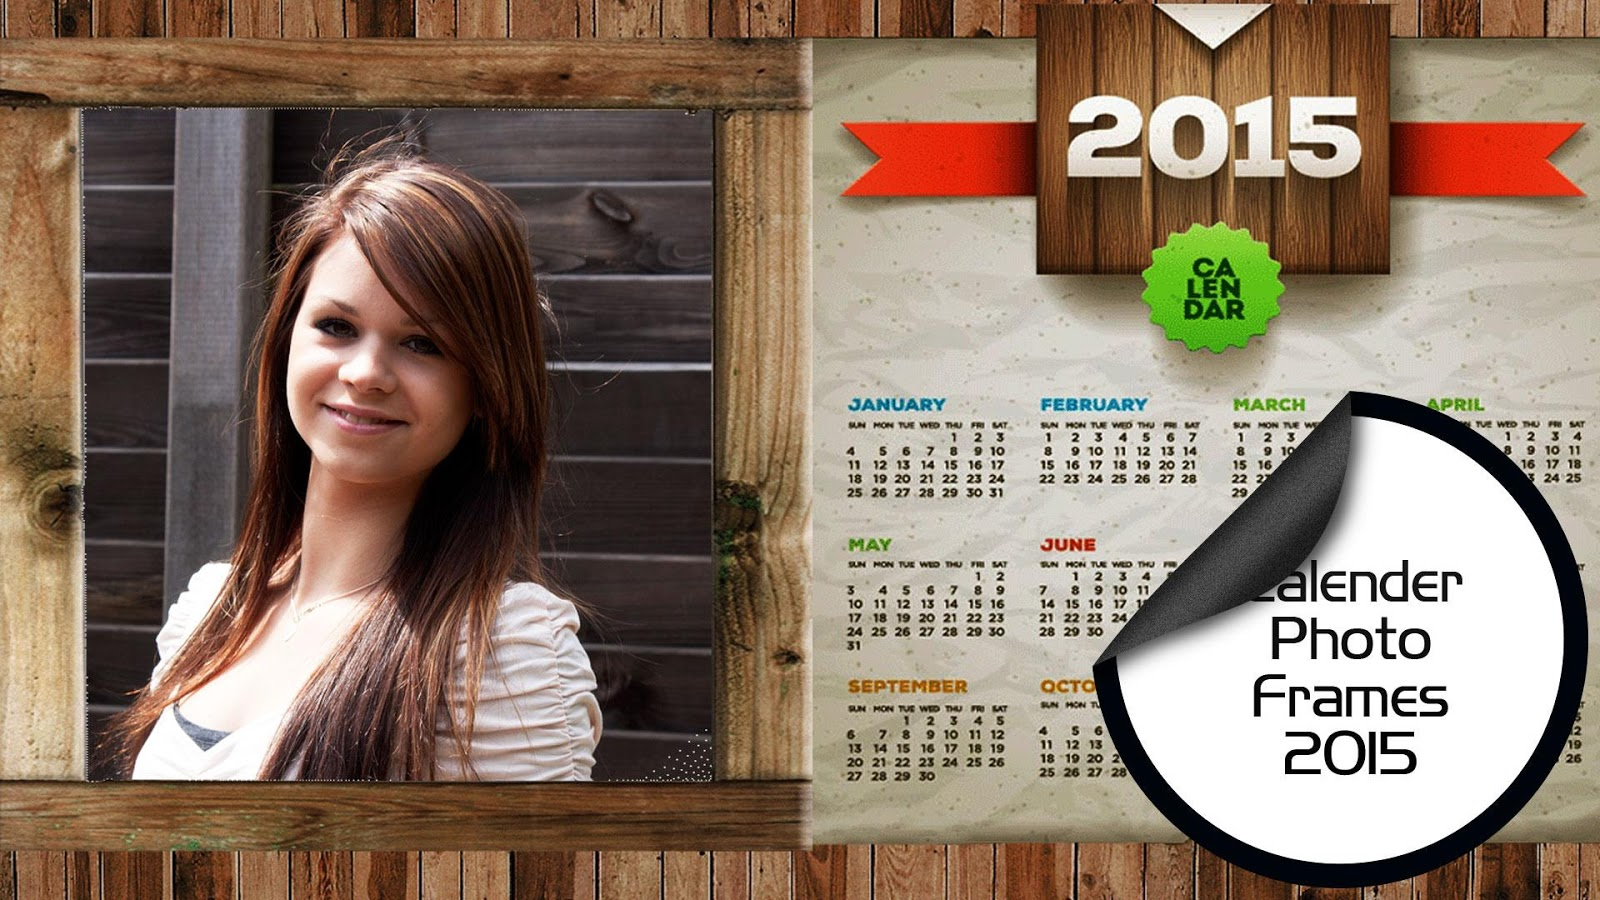 All Popular Photo Frames - Featured Android Apps Download - 9Apps 9apps photo frame download